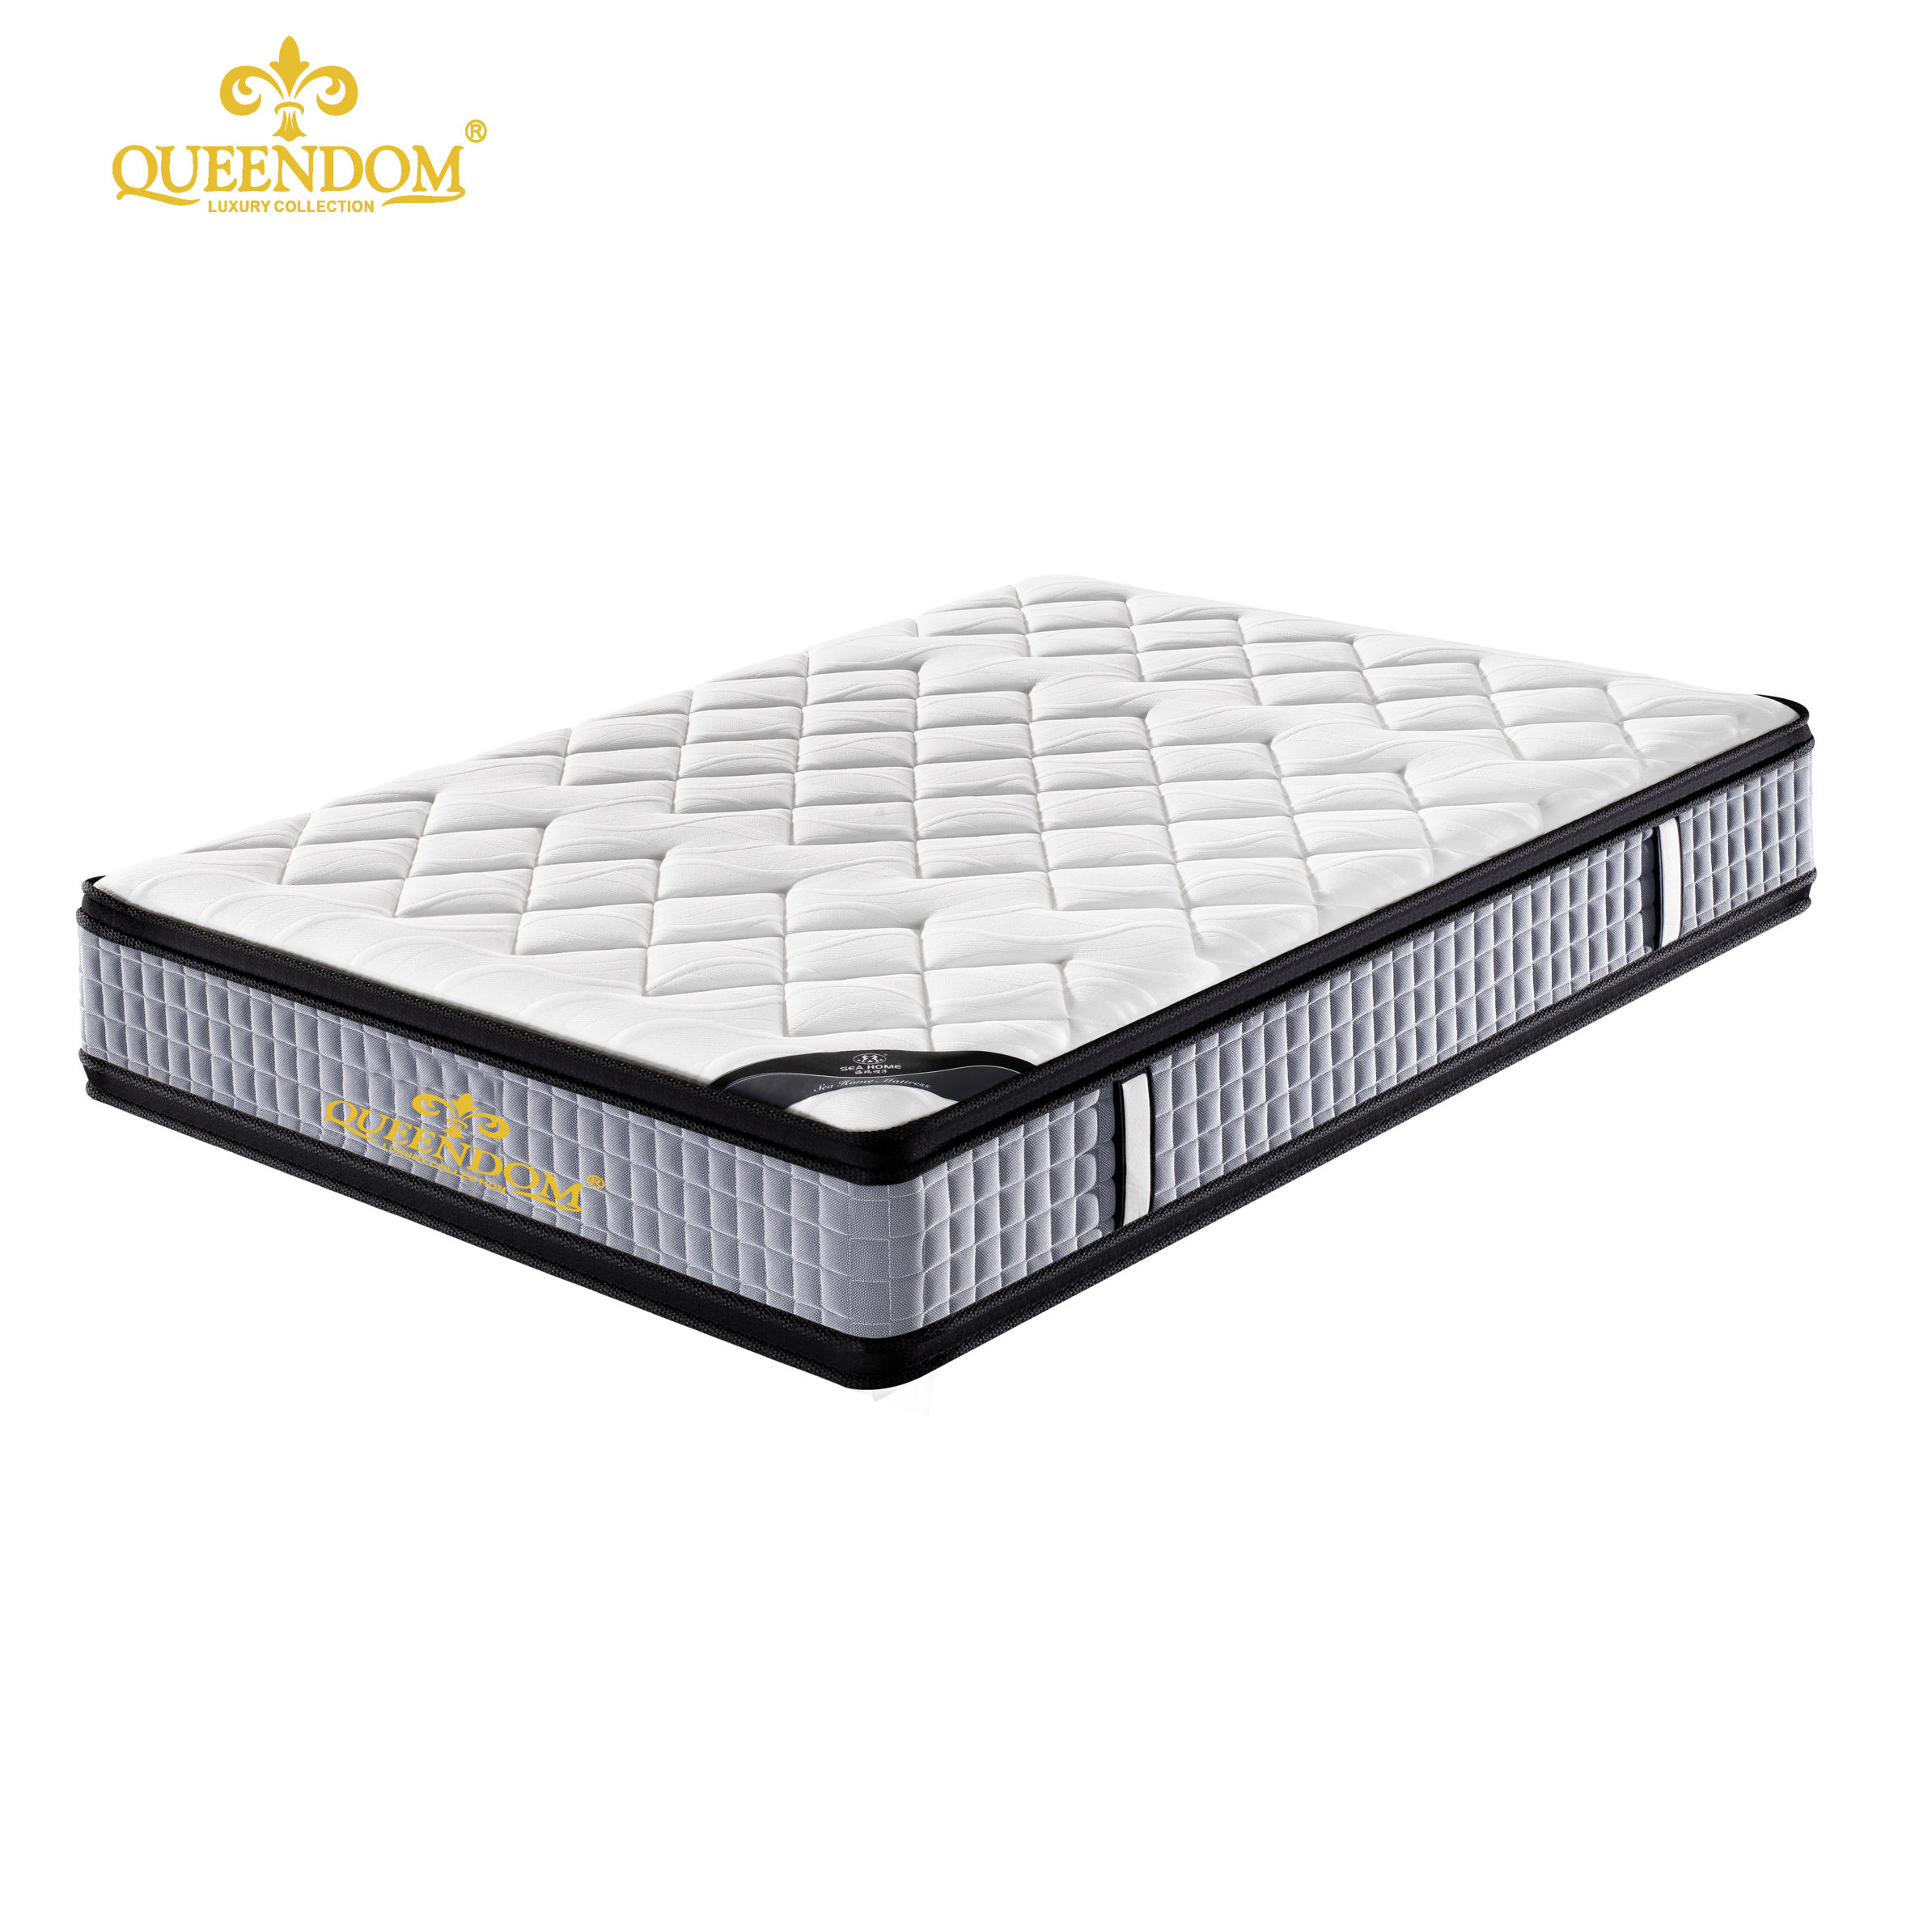 Double sides used Pocket spring pillow top mattress bed mattress manufacture